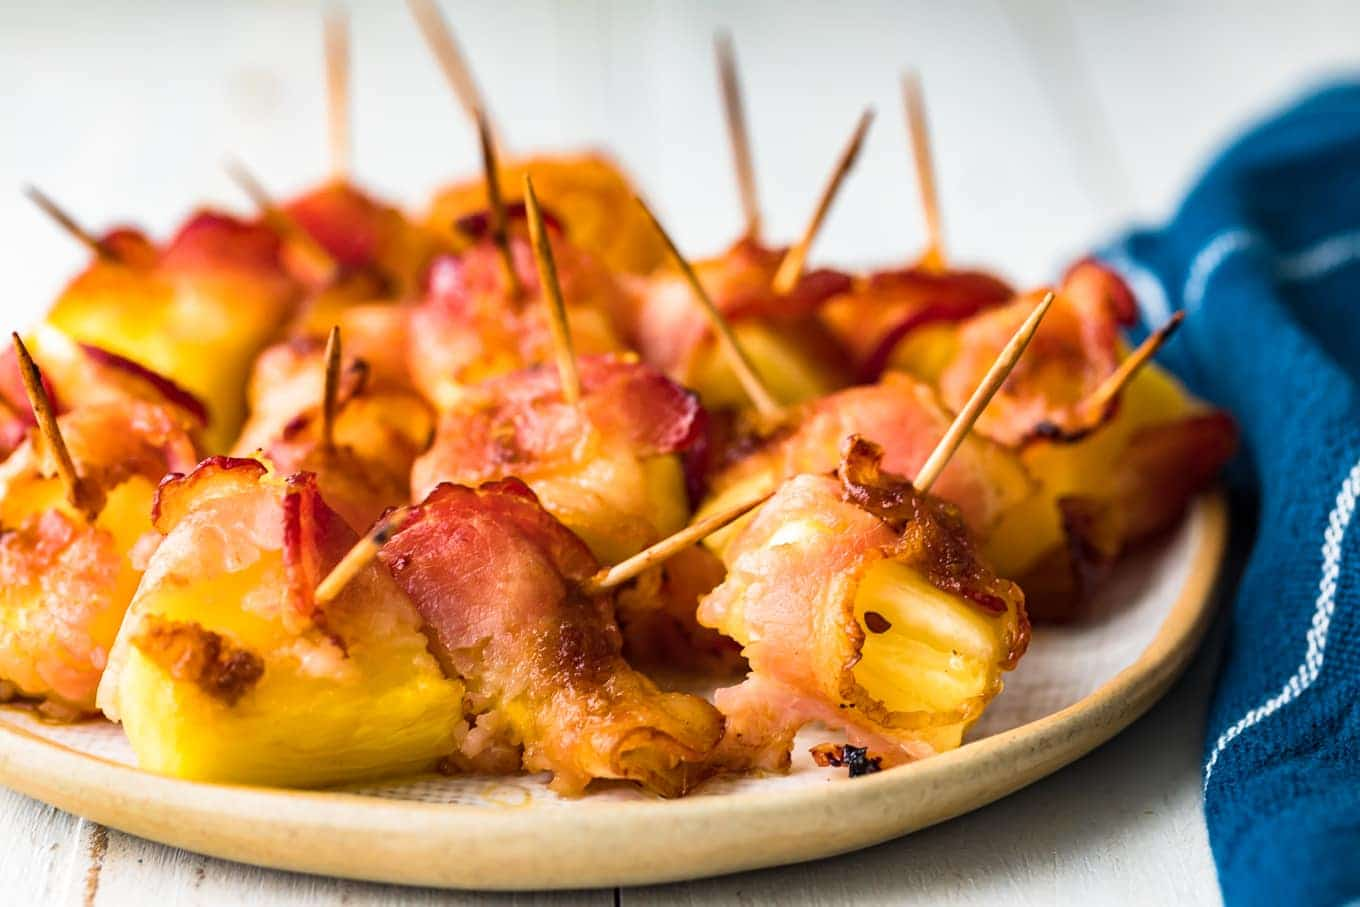 pineapple wrapped in bacon on a serving plate